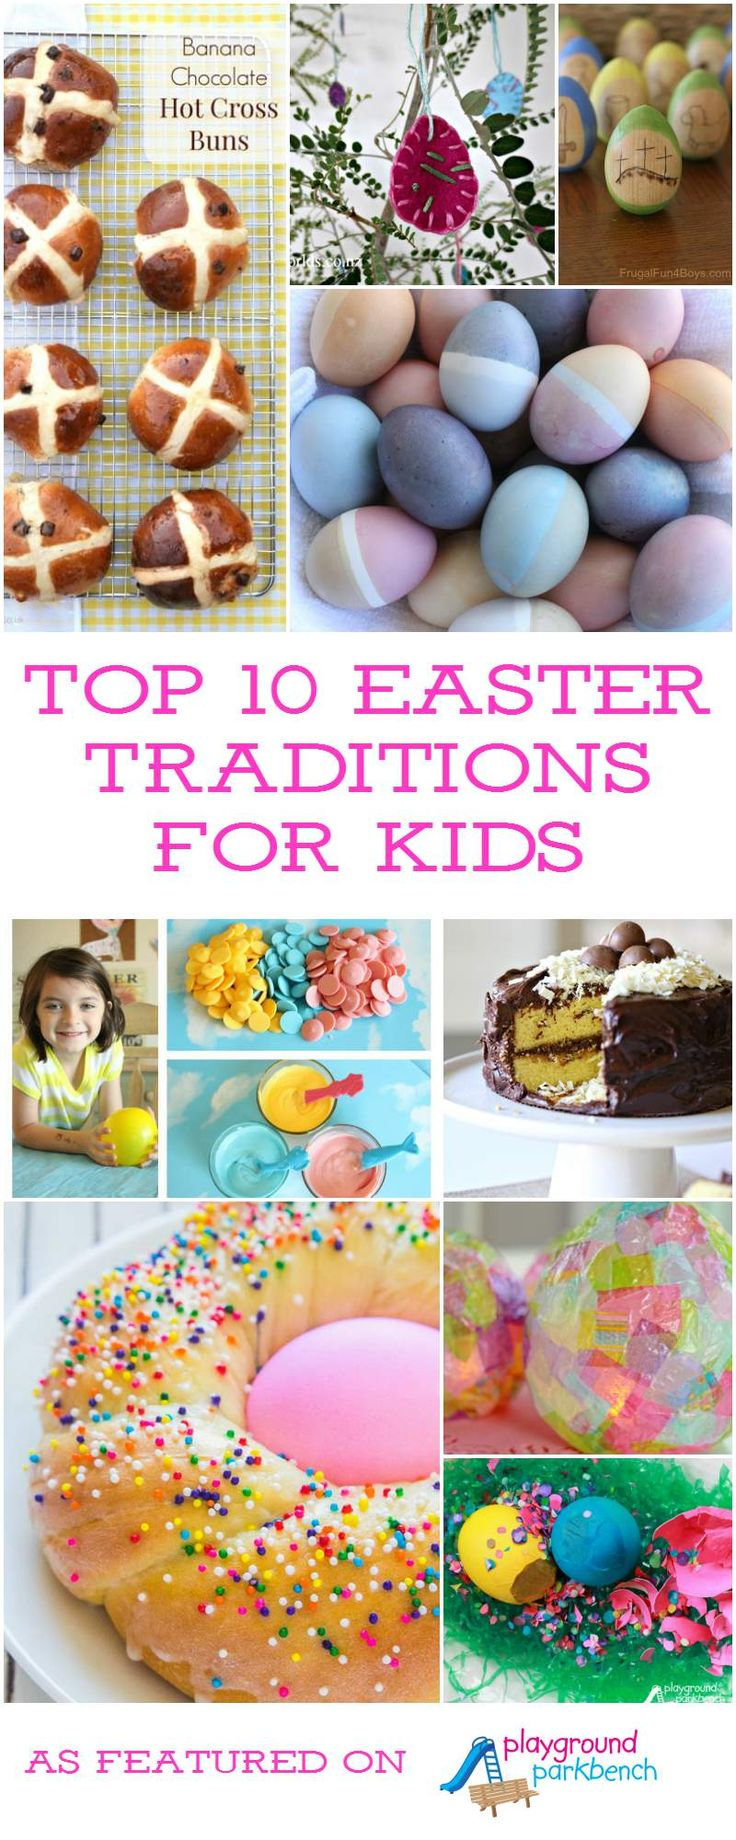 Celebrate Easter Sunday with these fun, festive, unique and creative Easter traditions for kids from across the country and around the world! Featuring recipes, crafts, decorations and more! | Easter | Crafts for Kids | Cooking with Kids | Easter Eggs | Holiday | Easter Traditions | Resurrection |